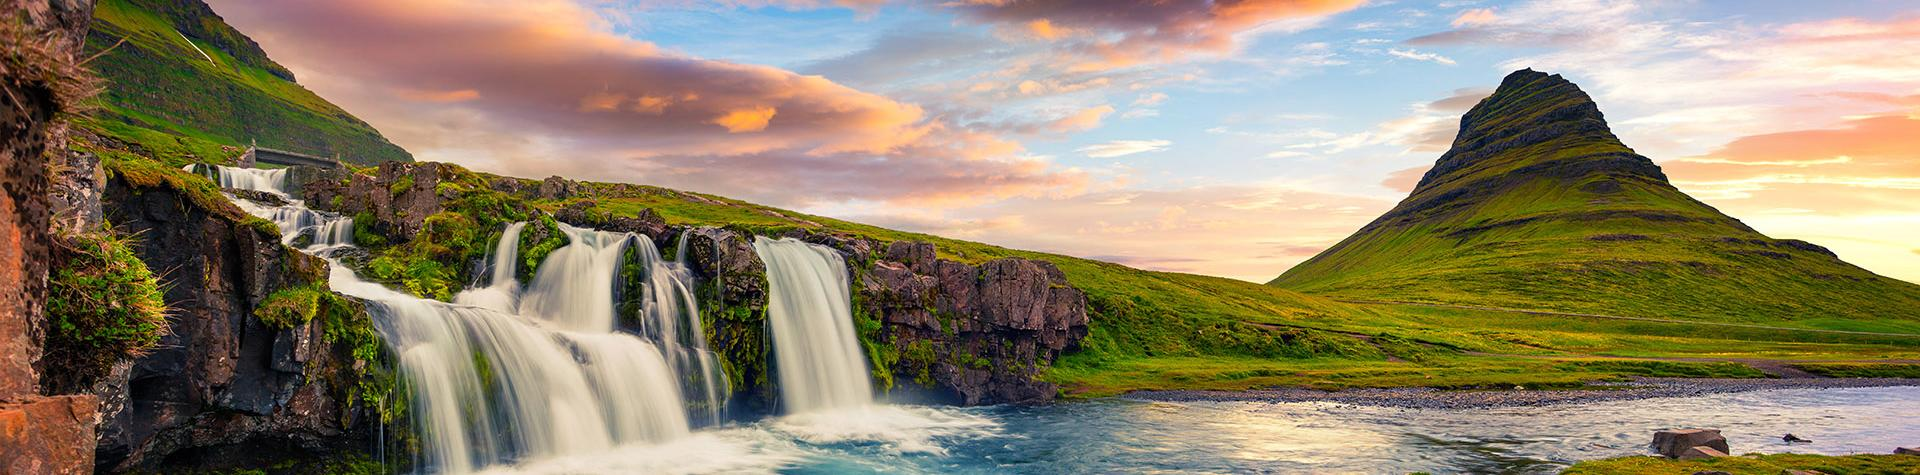 Tailor made holidays to Iceland